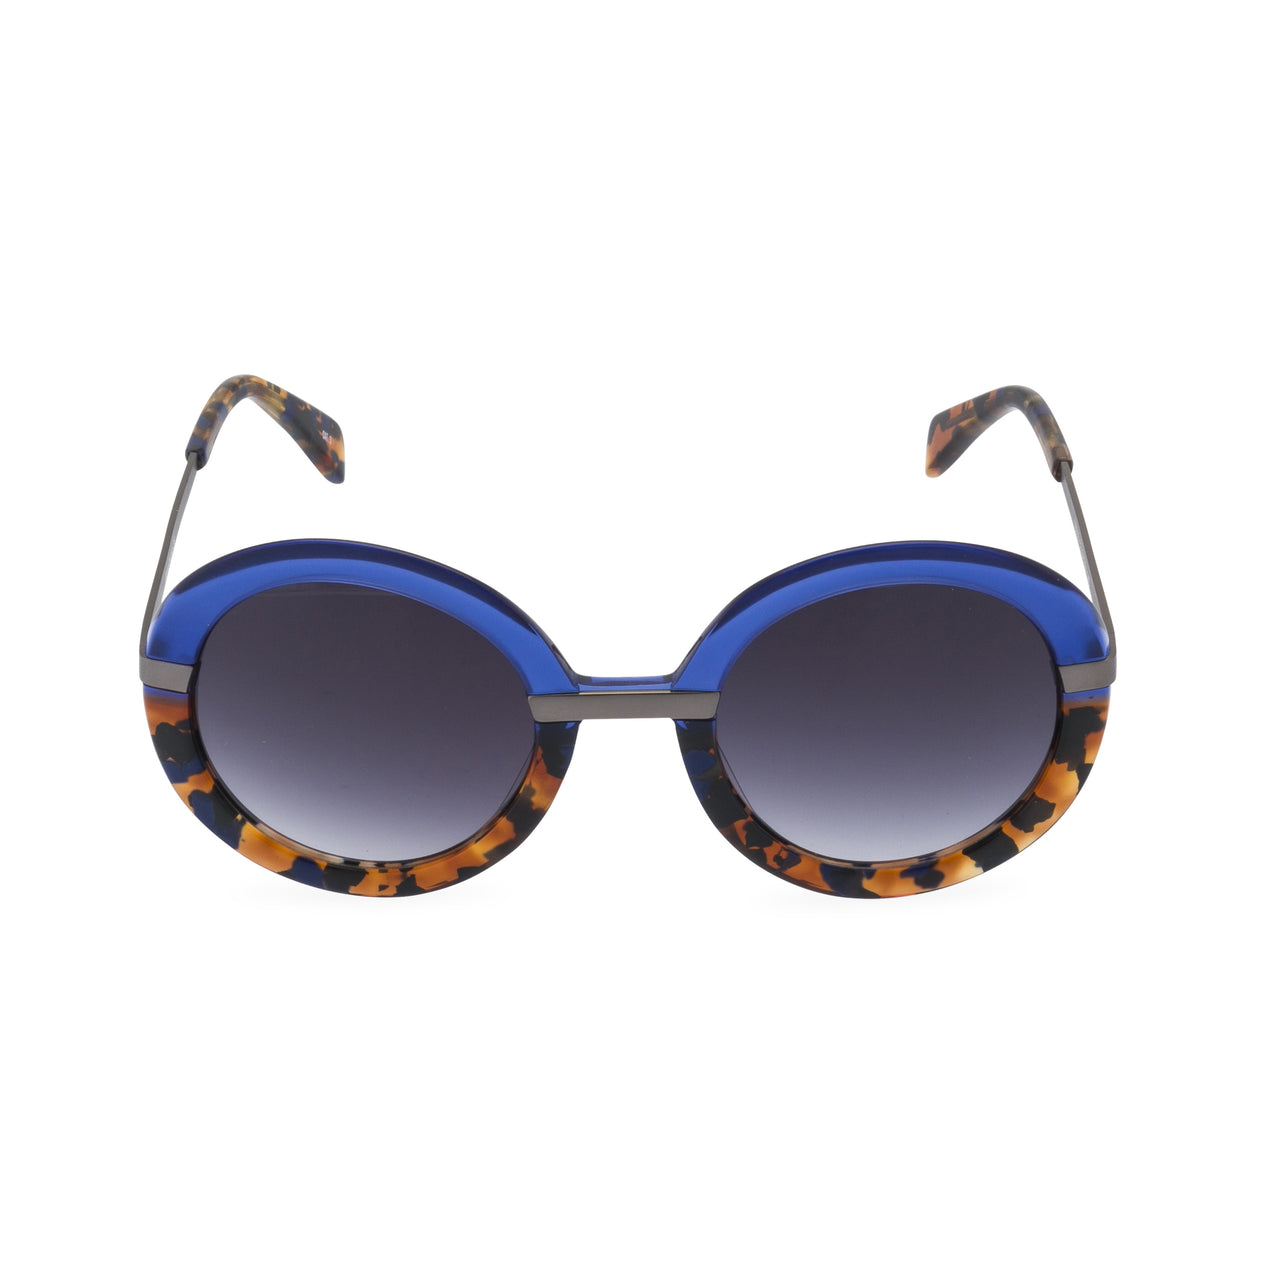 Twiggy - Sunglasses Blue Tortoise